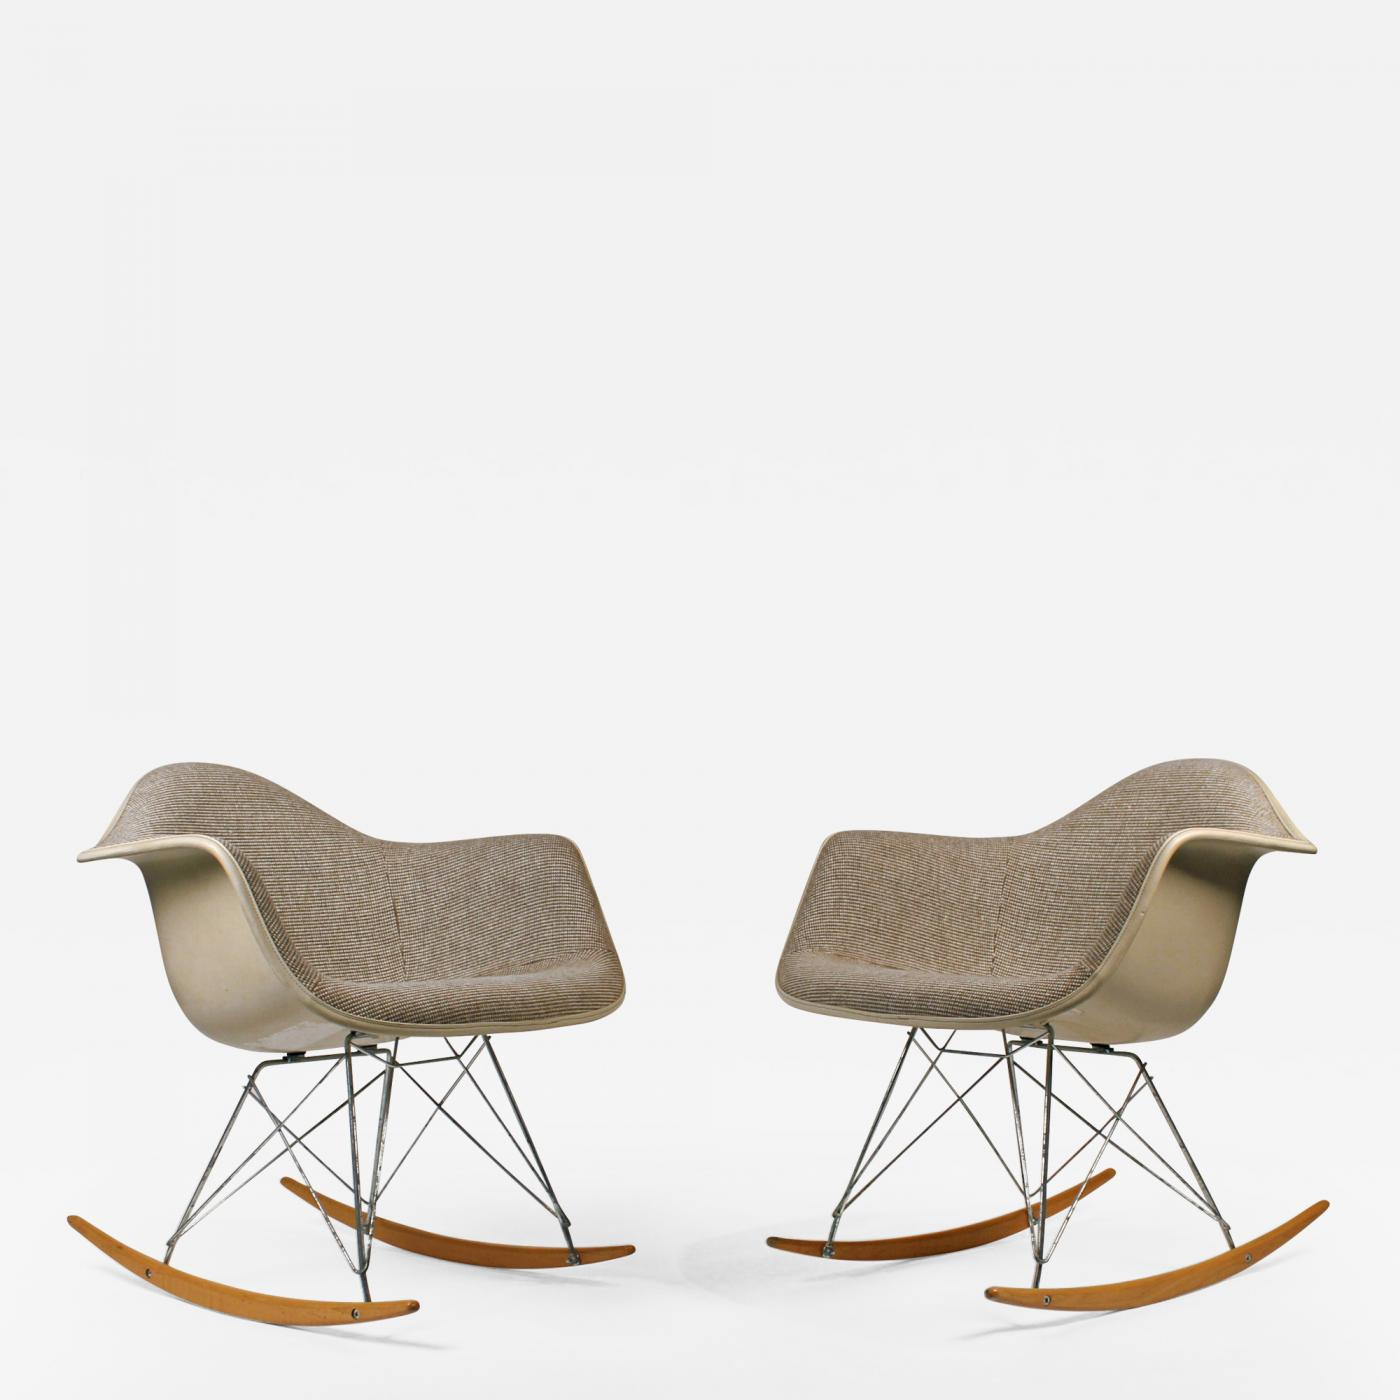 Rocking Chairs Charles Eames Rocking Chairs By Charles Eames For Herman Miller With Alexander Girard Textile